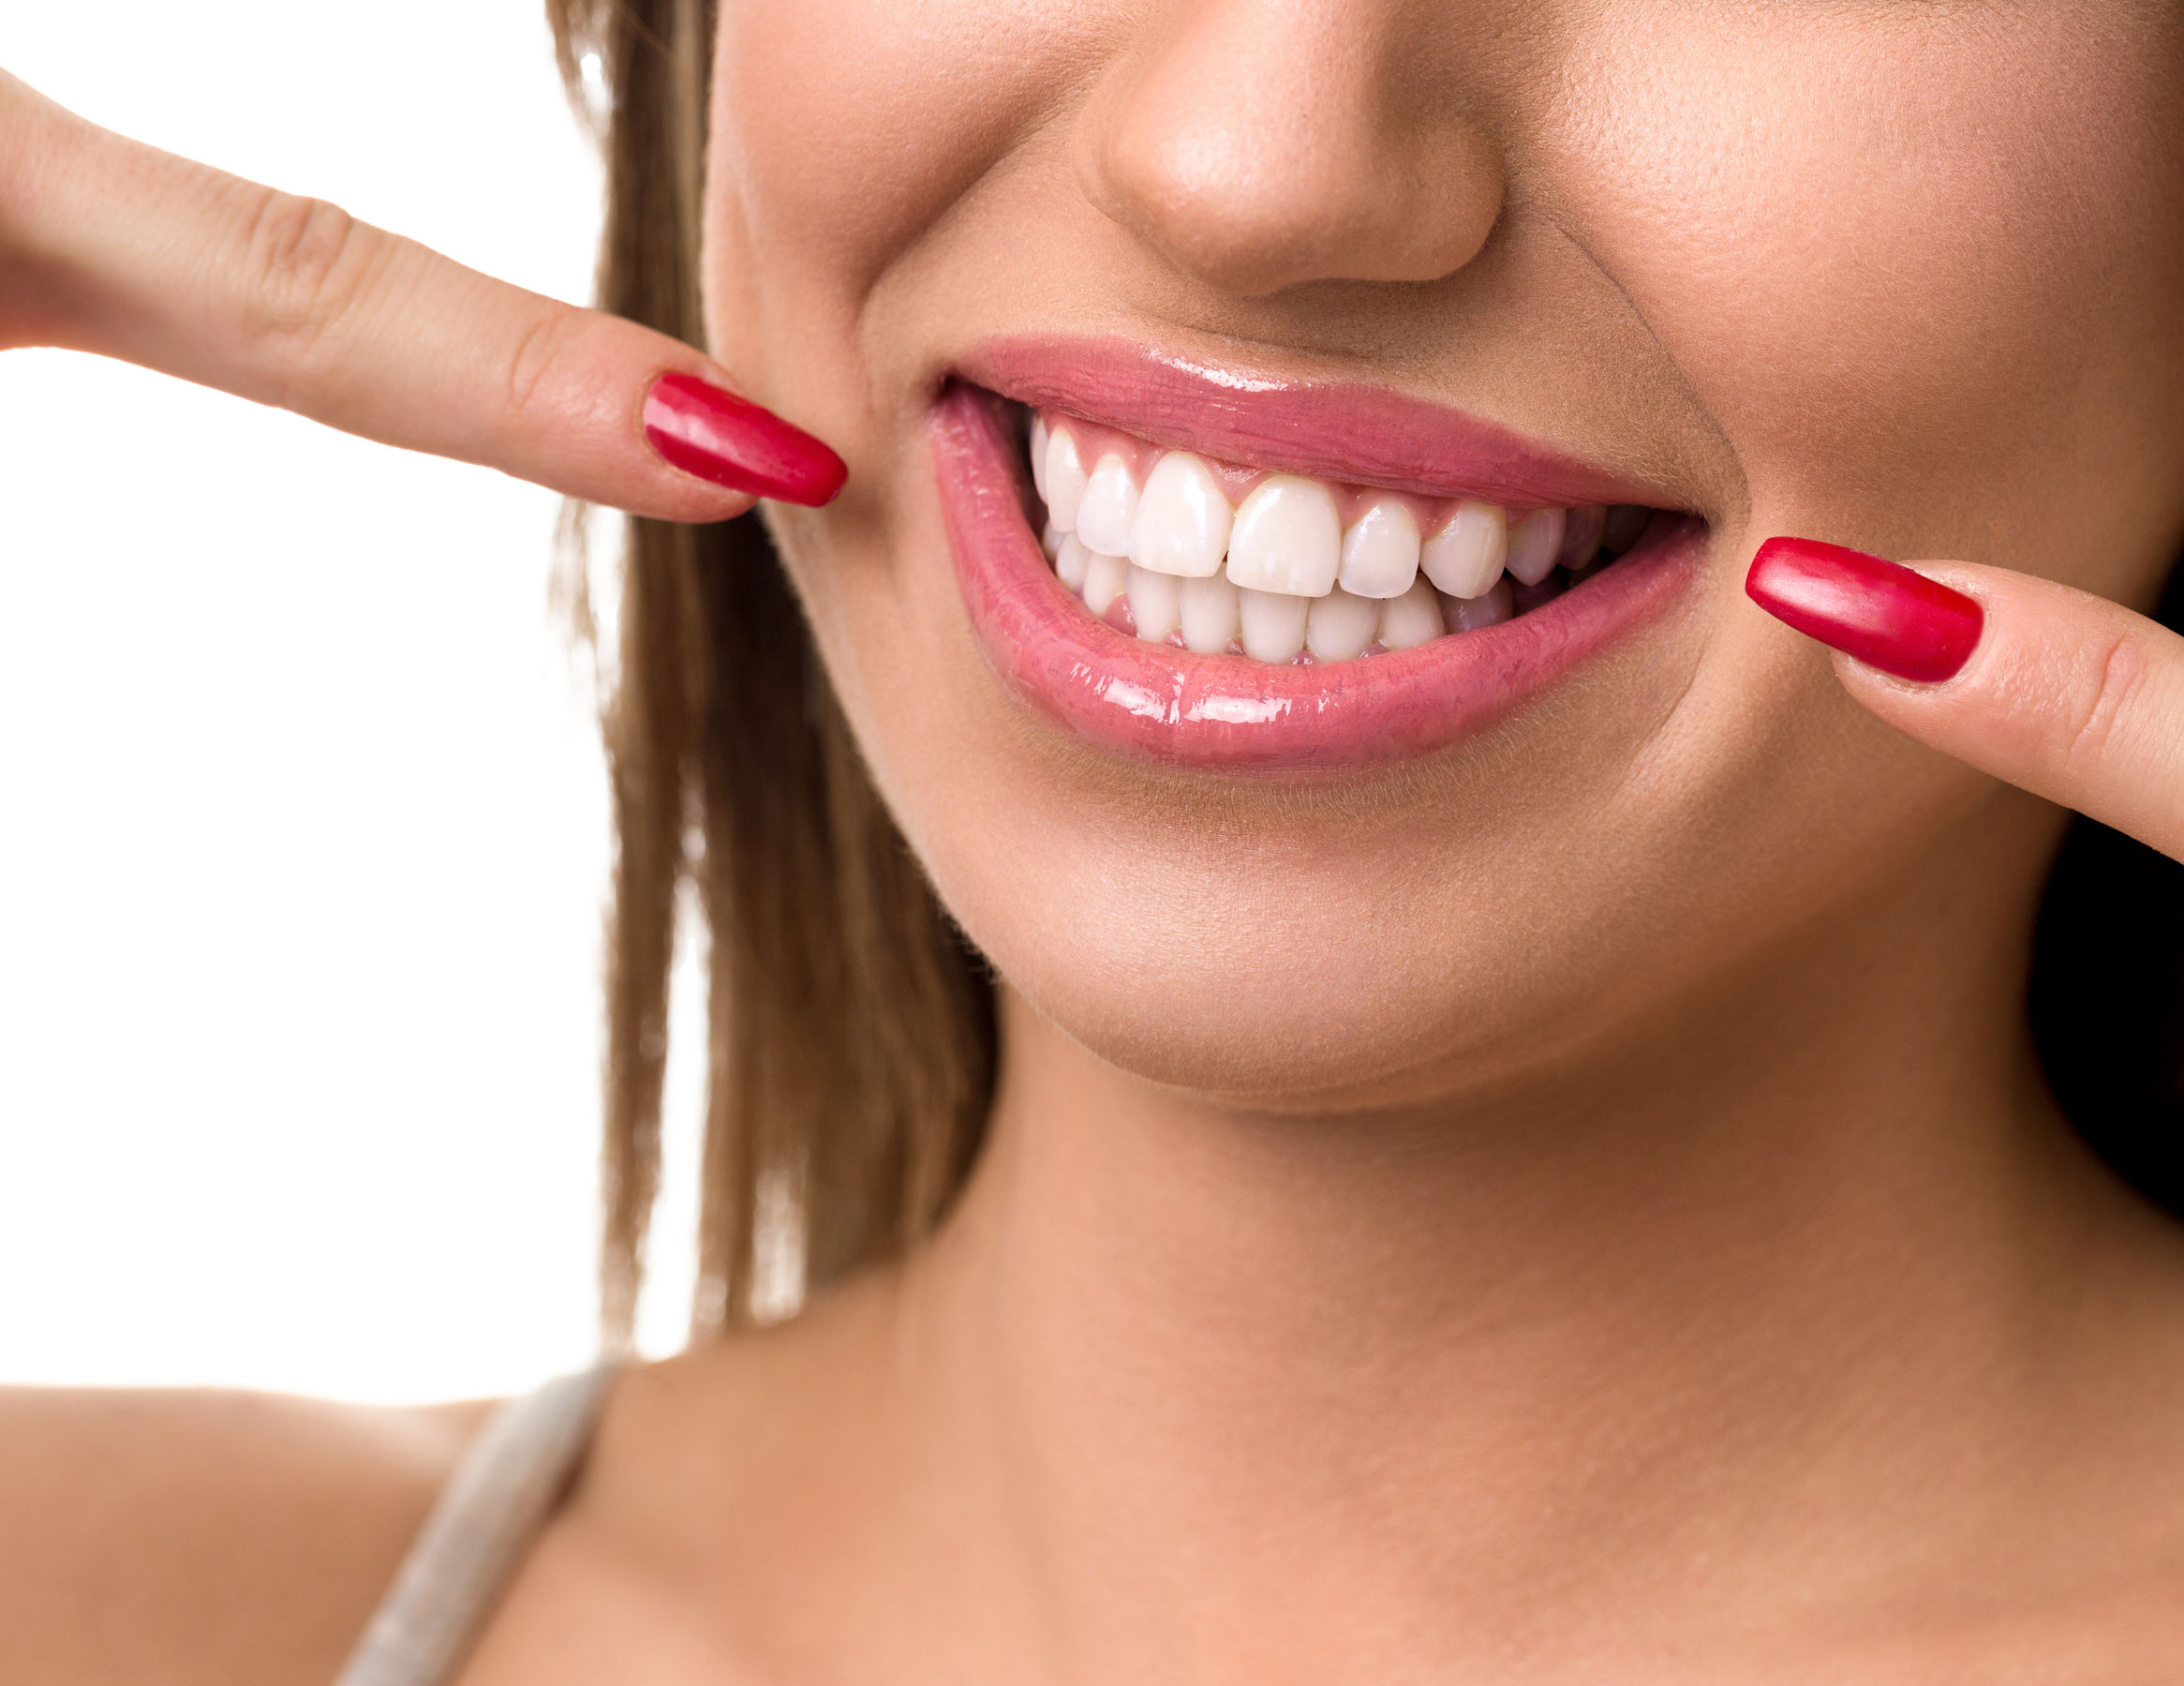 Where Can I Get Fort Lauderdale Teeth Whitening?